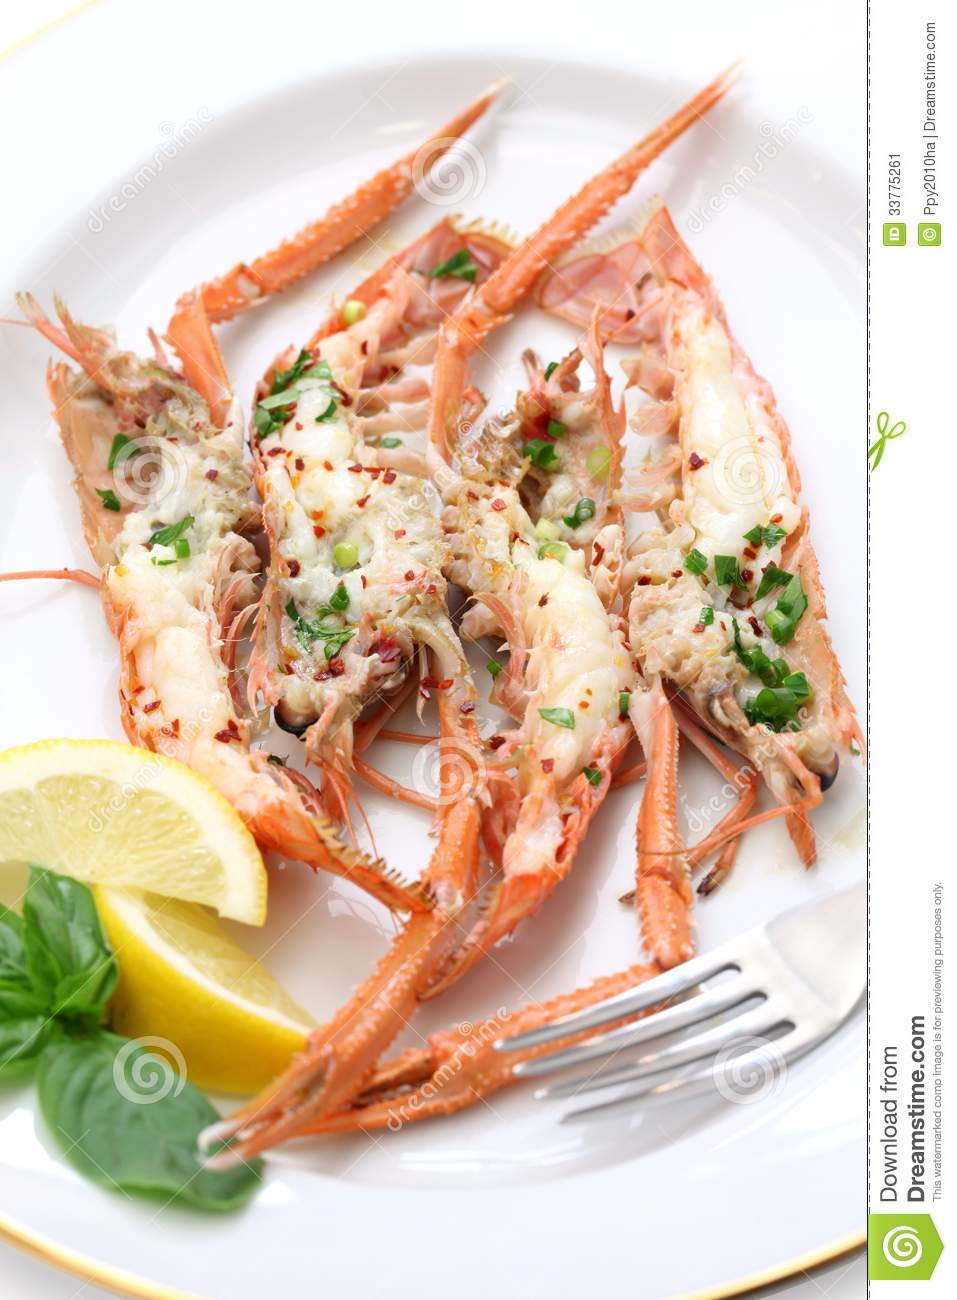 Grilled Scampi Stock Image - Image: 33775261